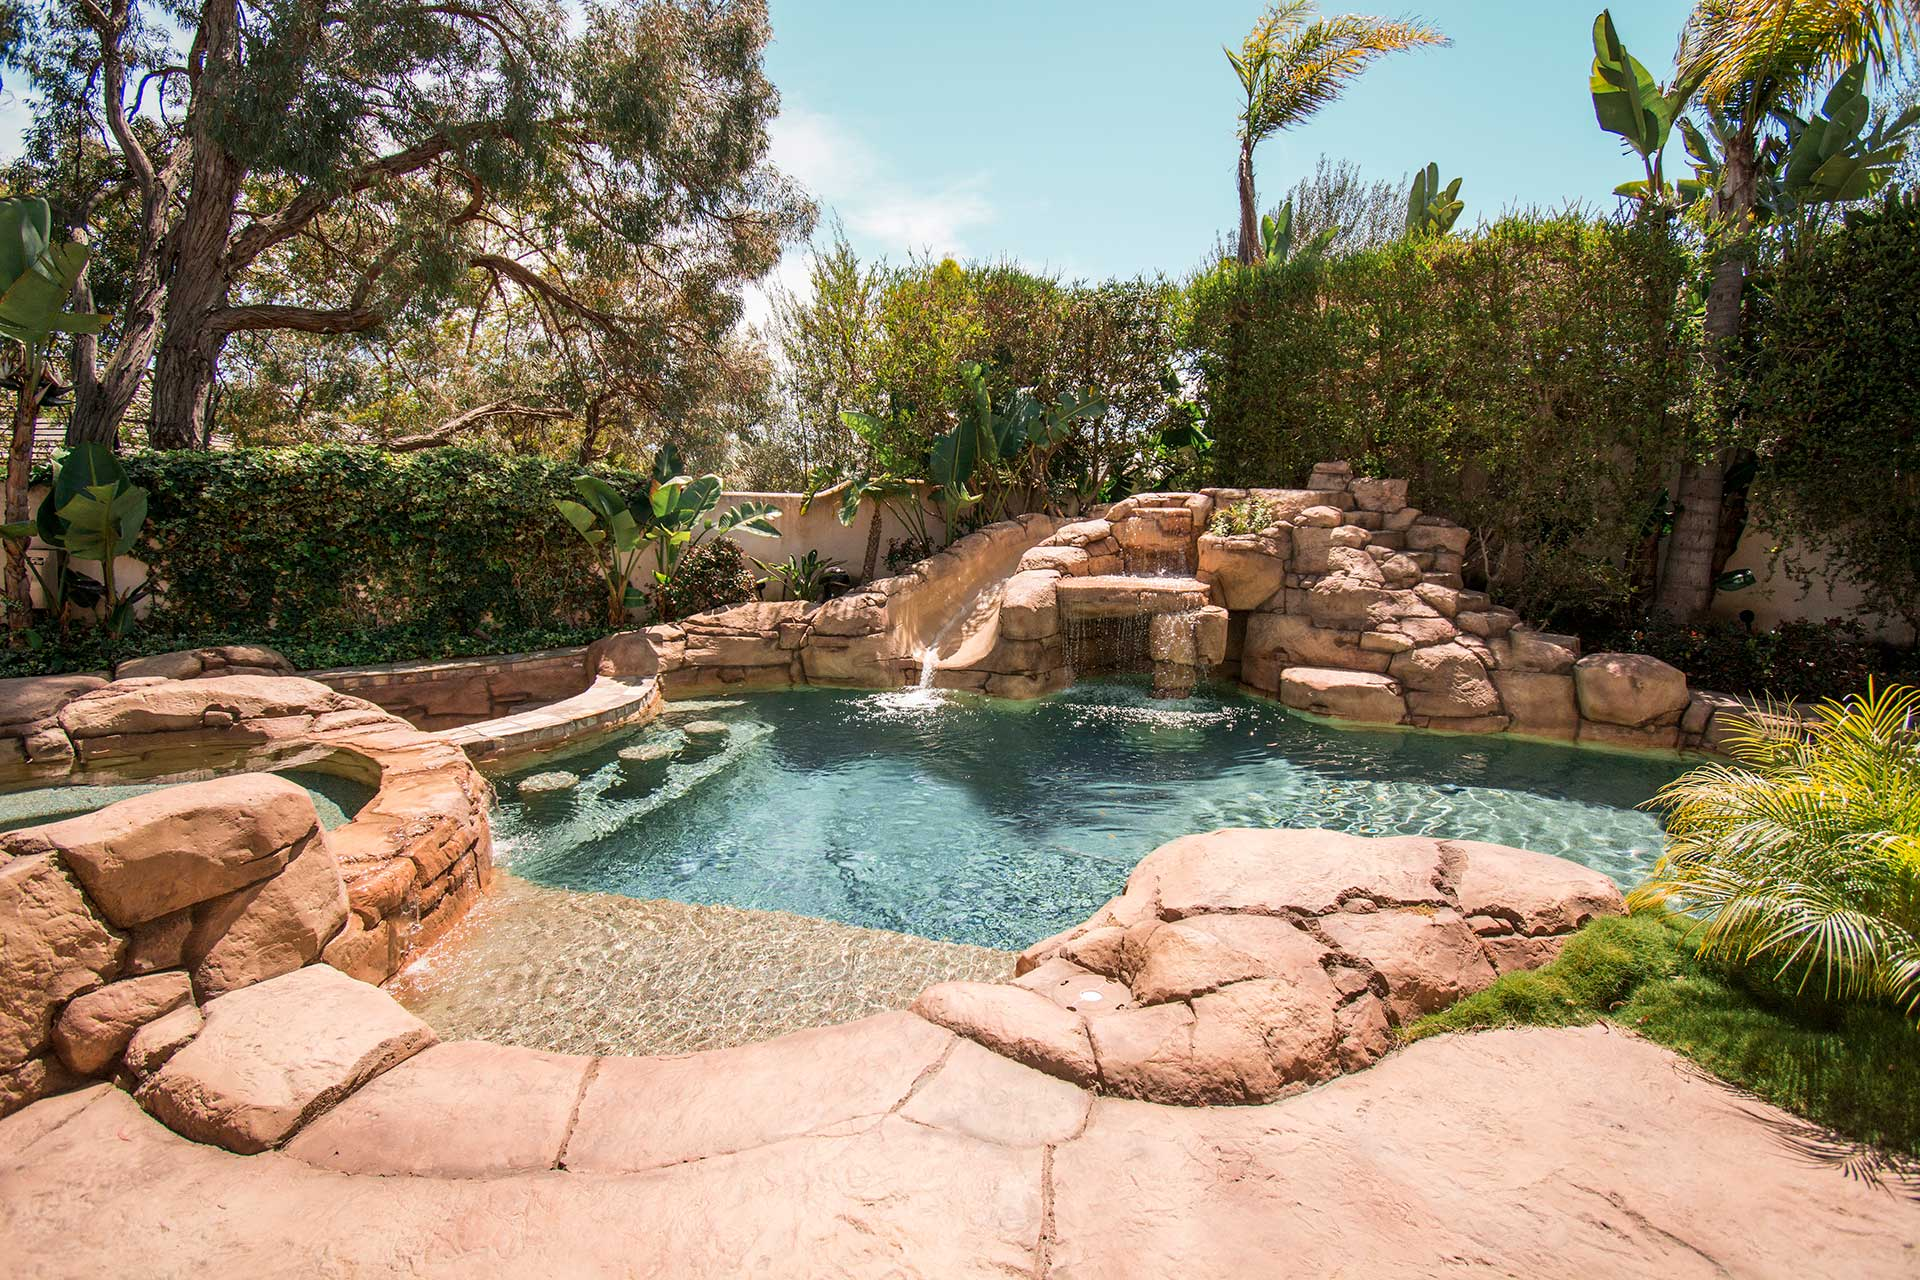 This Southern California home's pool is an entertainer's dream with underwater bar seats, a hot tub, waterslide, and beach entry.